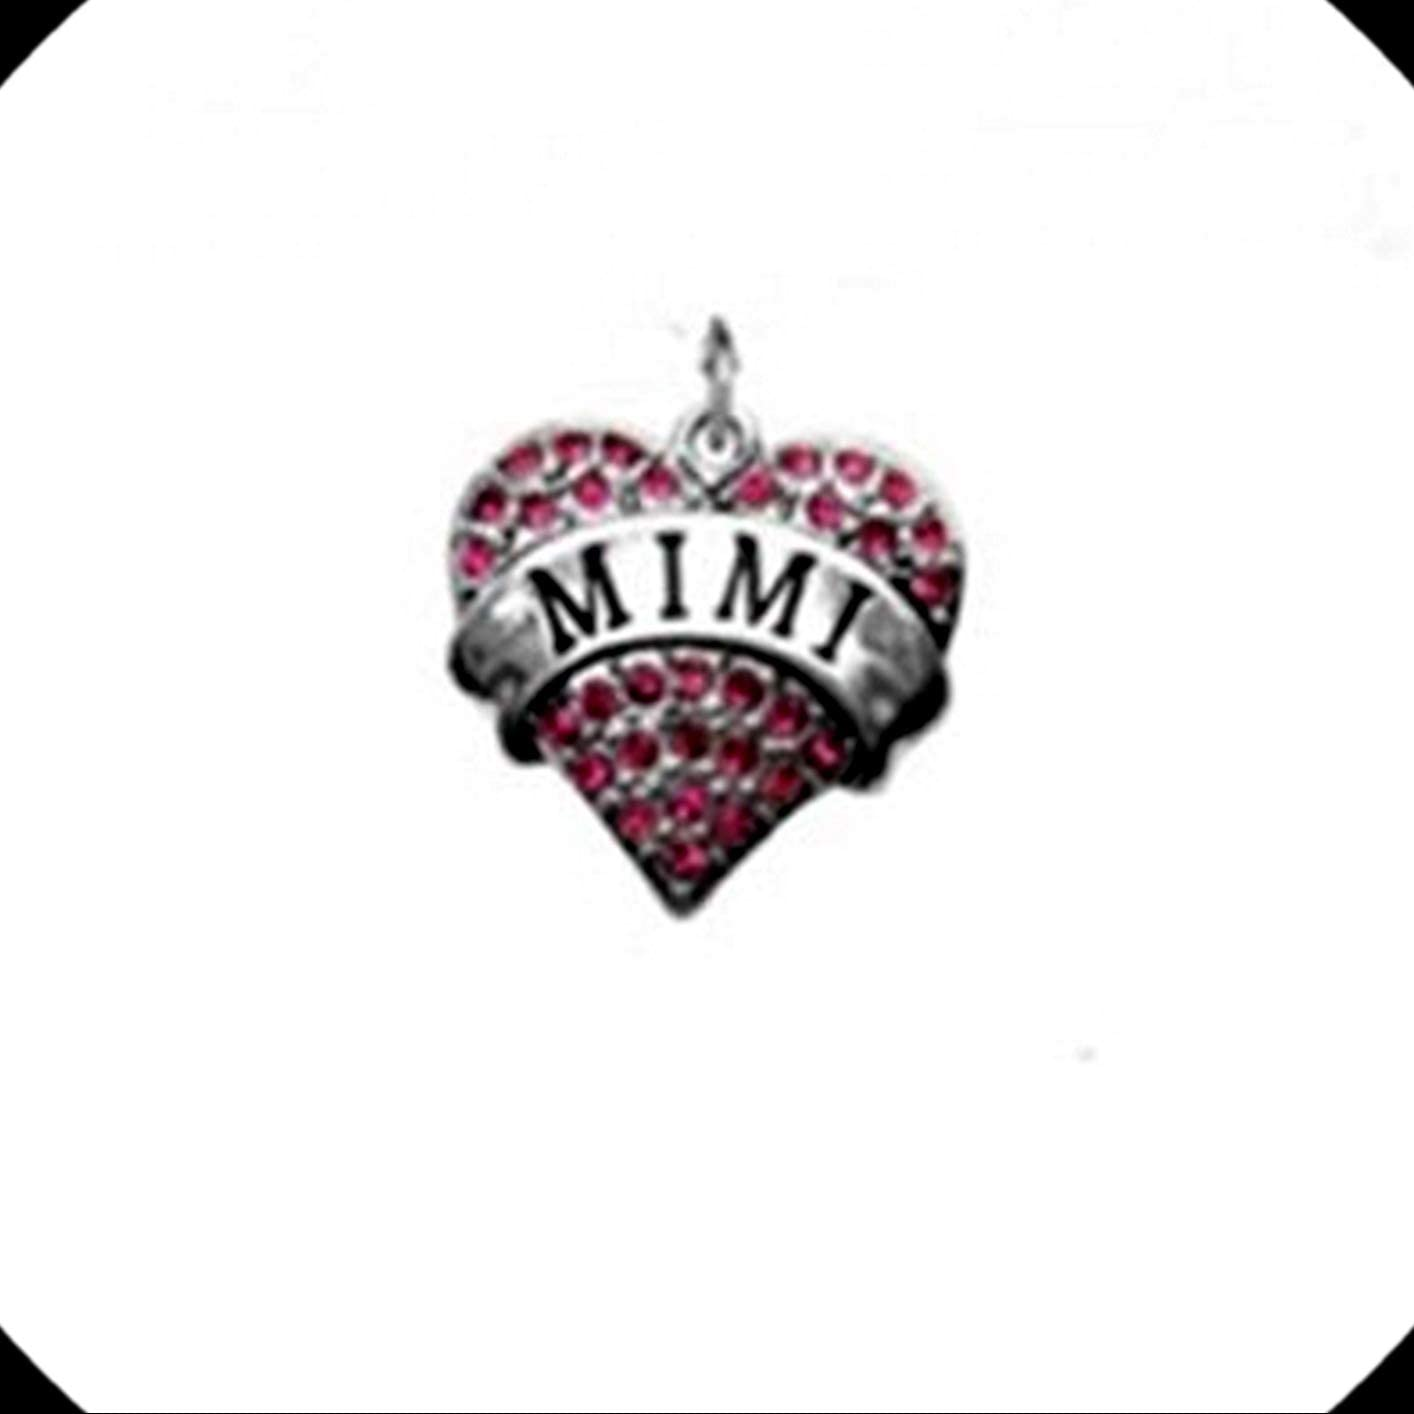 Mimi Grandmother Pink Rhinestone Heart Silver Traditional Charm or Pendant Adorable Charms and More for Your own Designs by CharmingStuffS